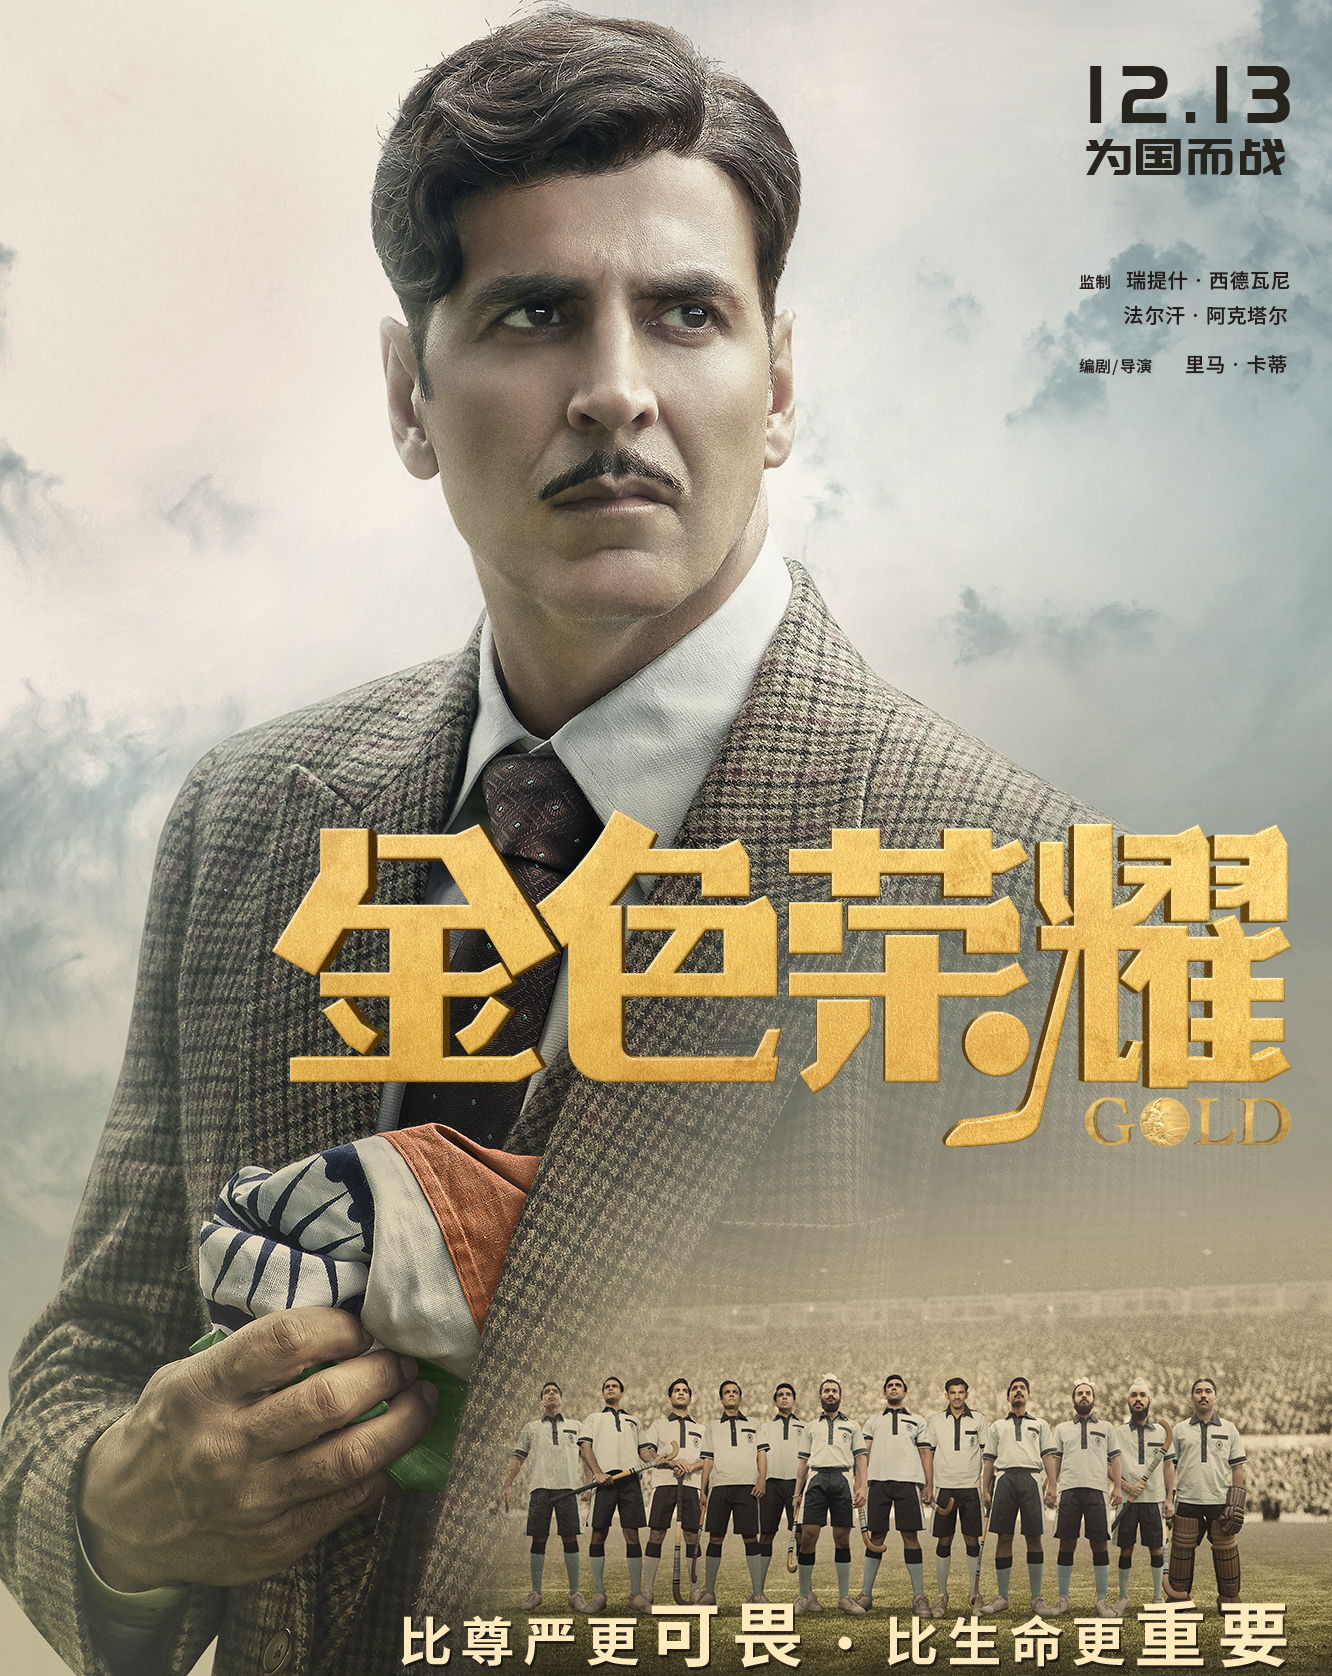 Akshay Kumar's Gold will release in China on December 13